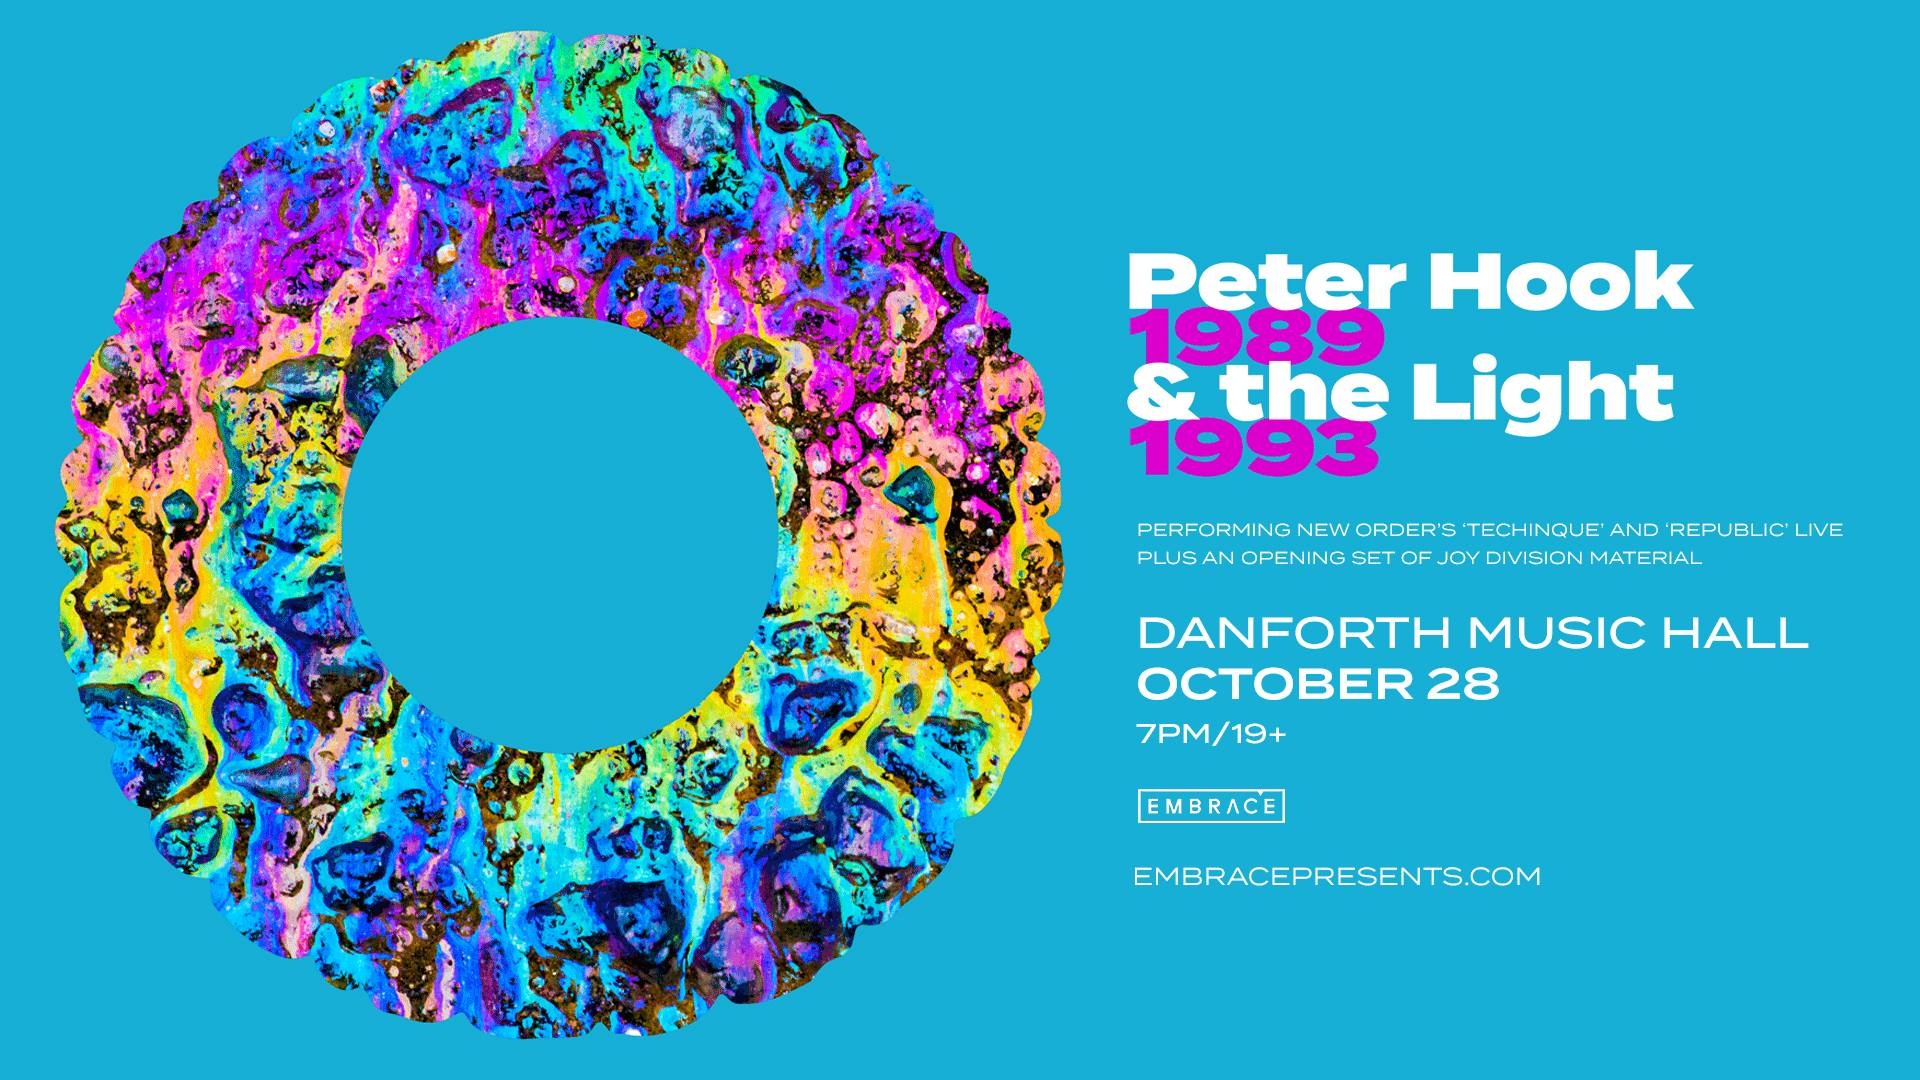 Peter Hook & the Light @ The Danforth Music Hall